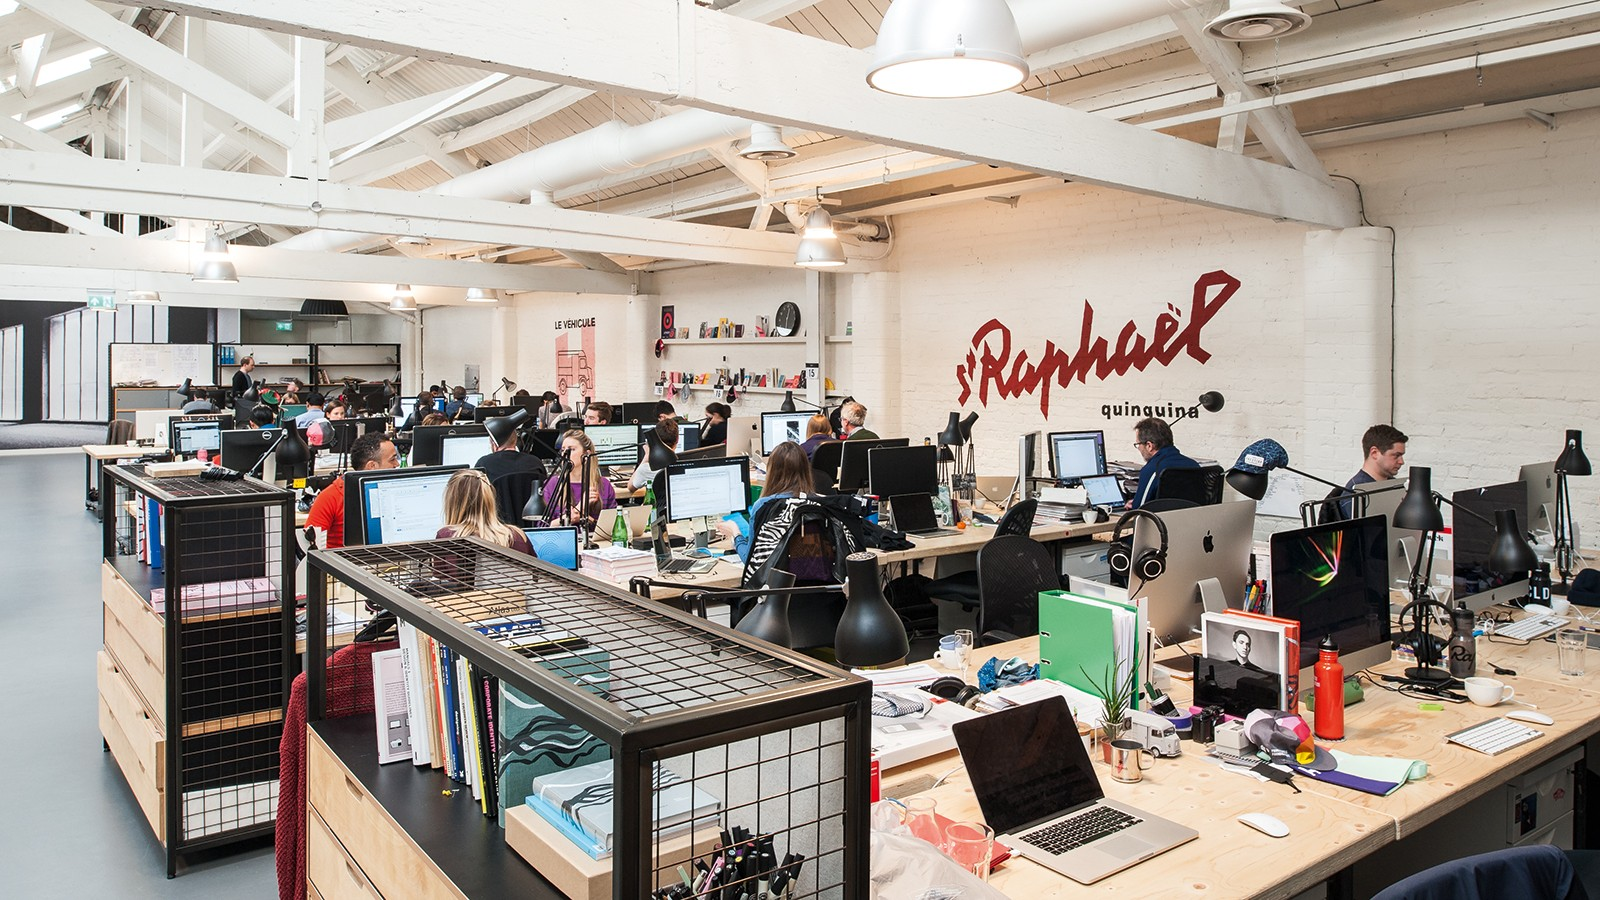 Over 180 people are employed at Rapha's London headquarters